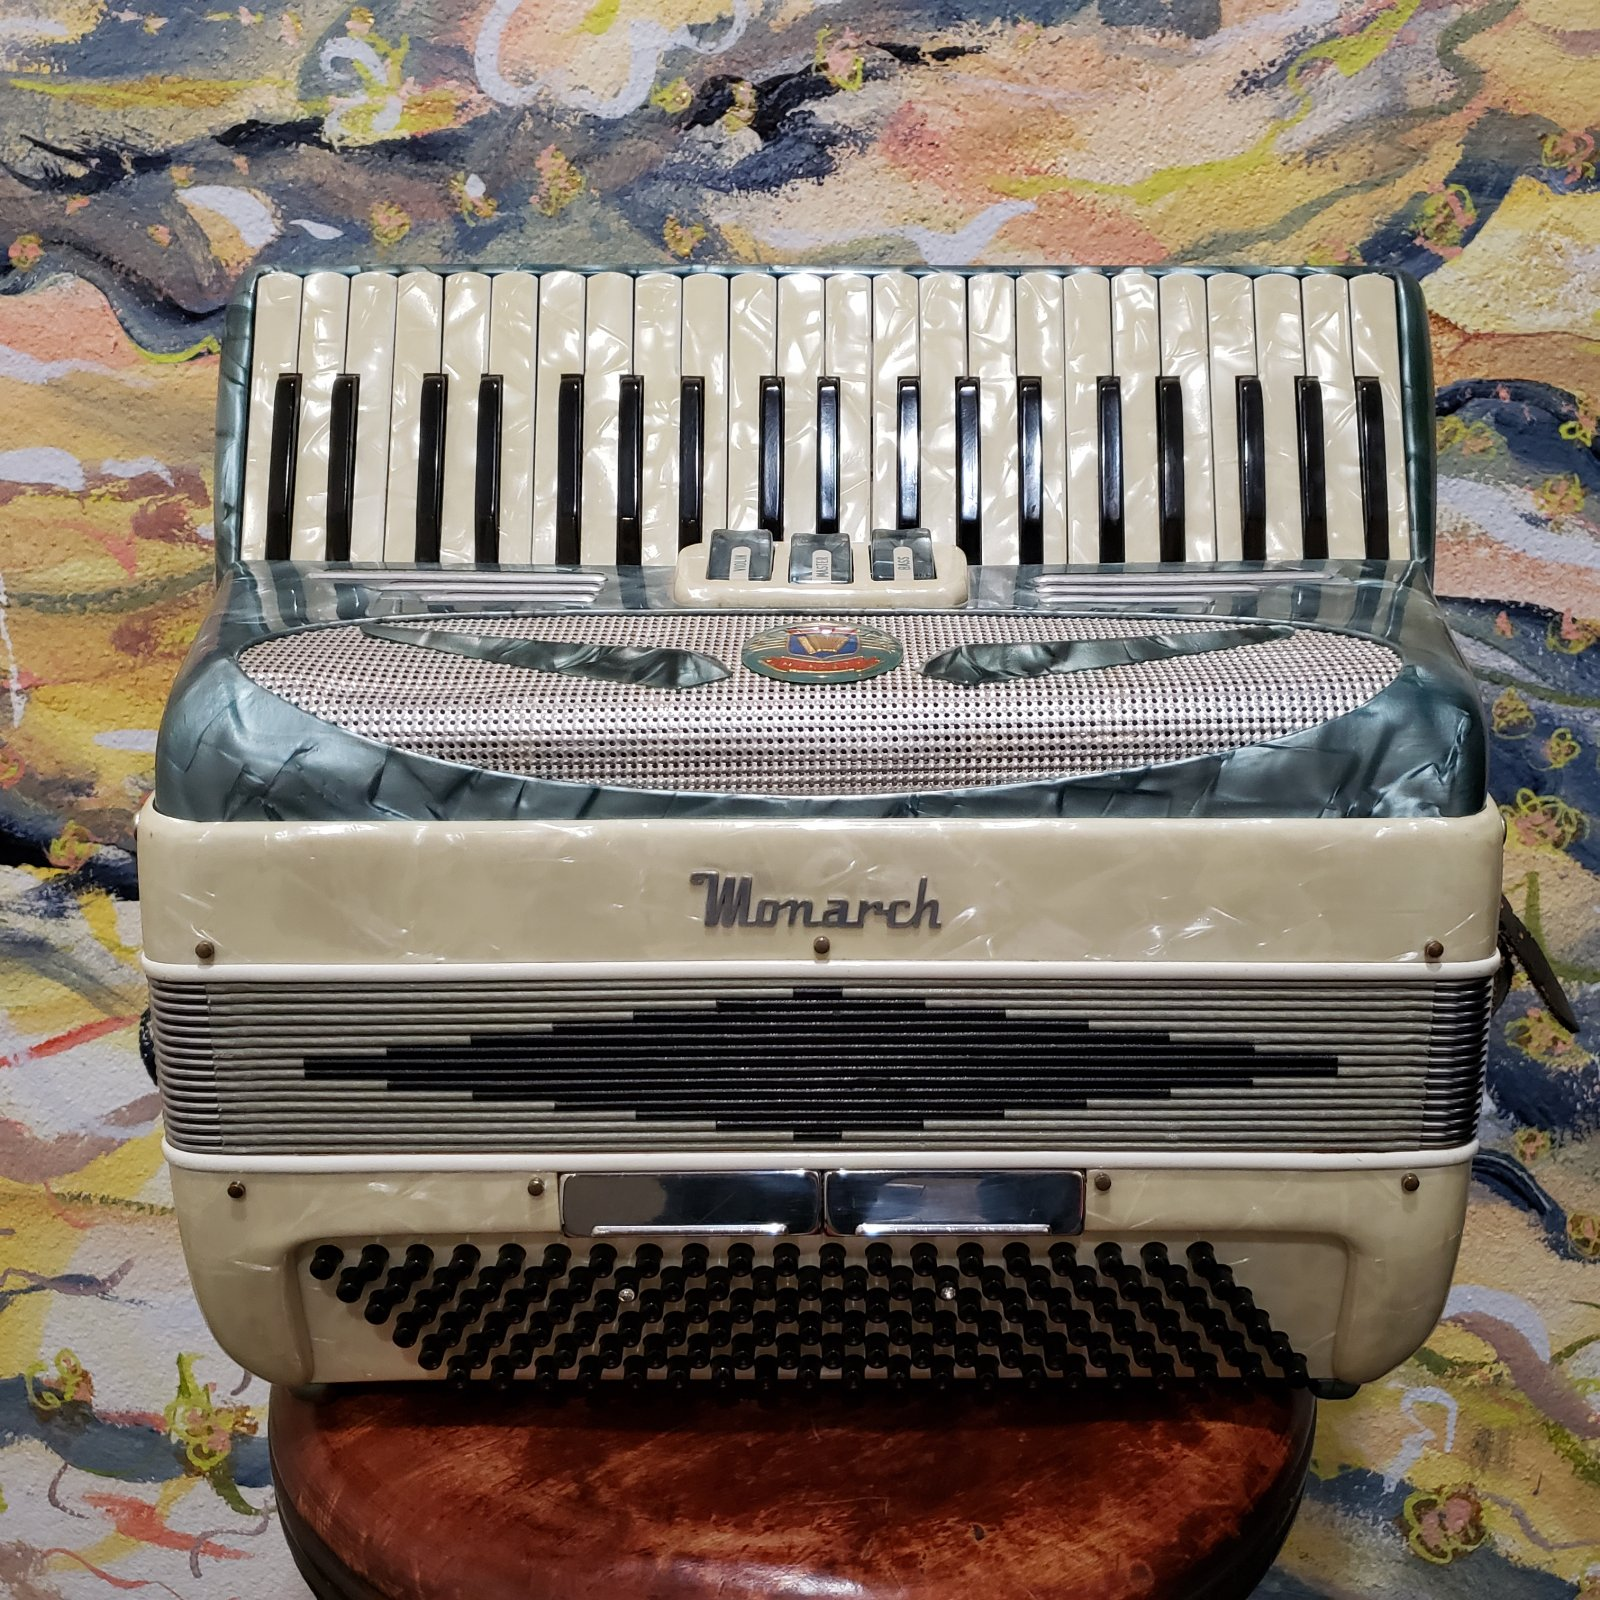 Monarch Vintage Keyboard Accordion w/Hard Case (Made in Italy) (Used)